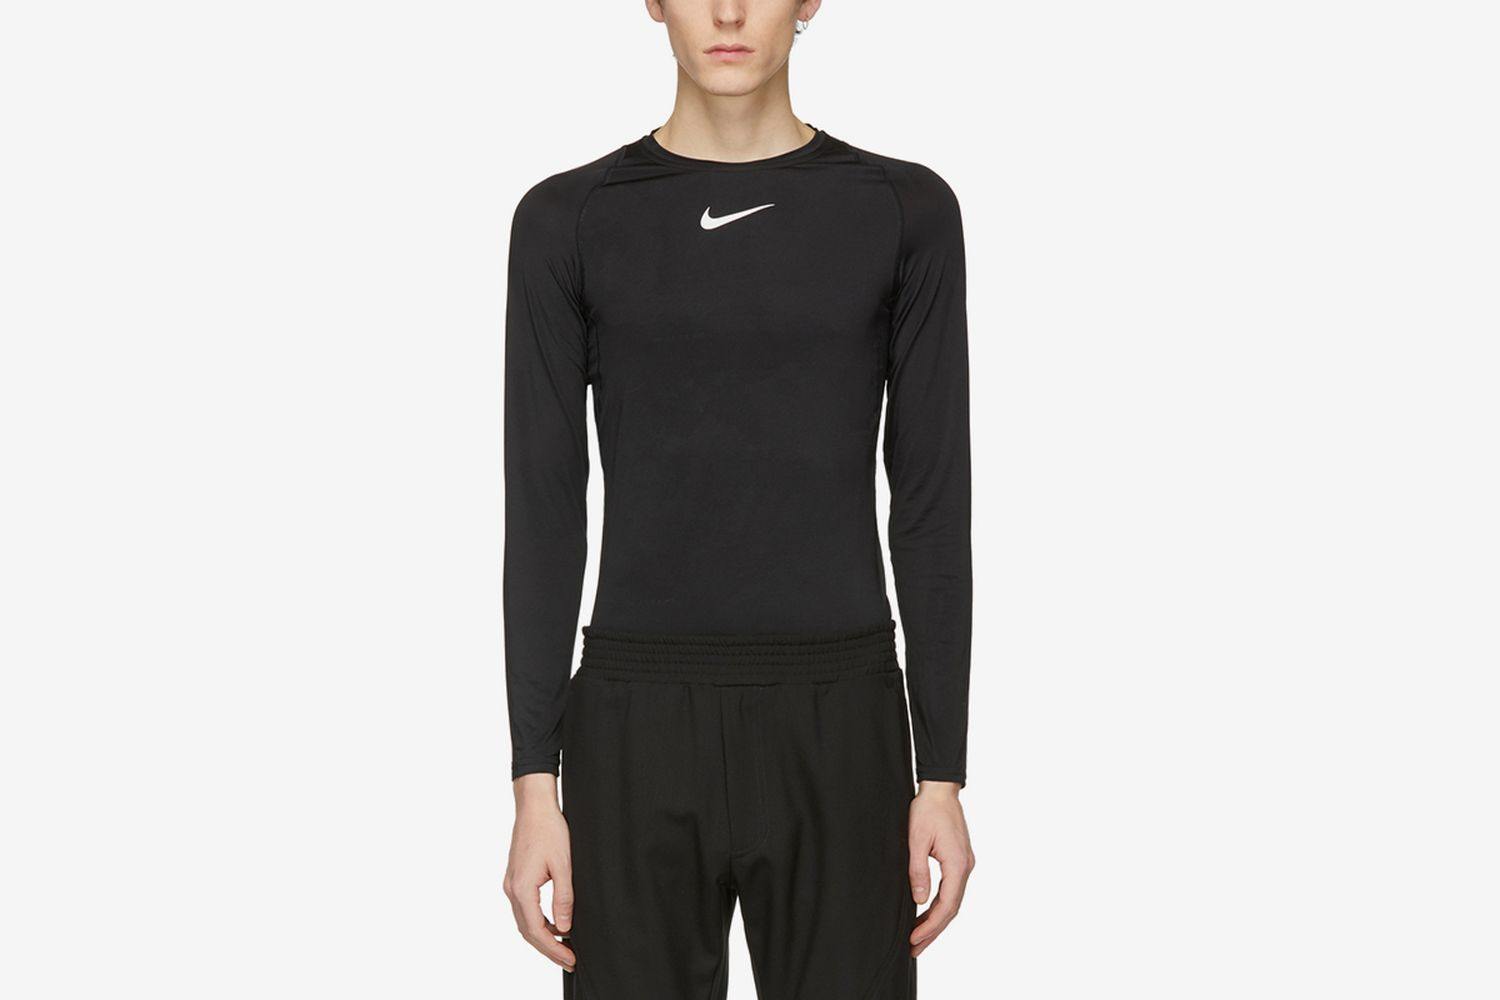 Nike Edition Laser T-Shirt